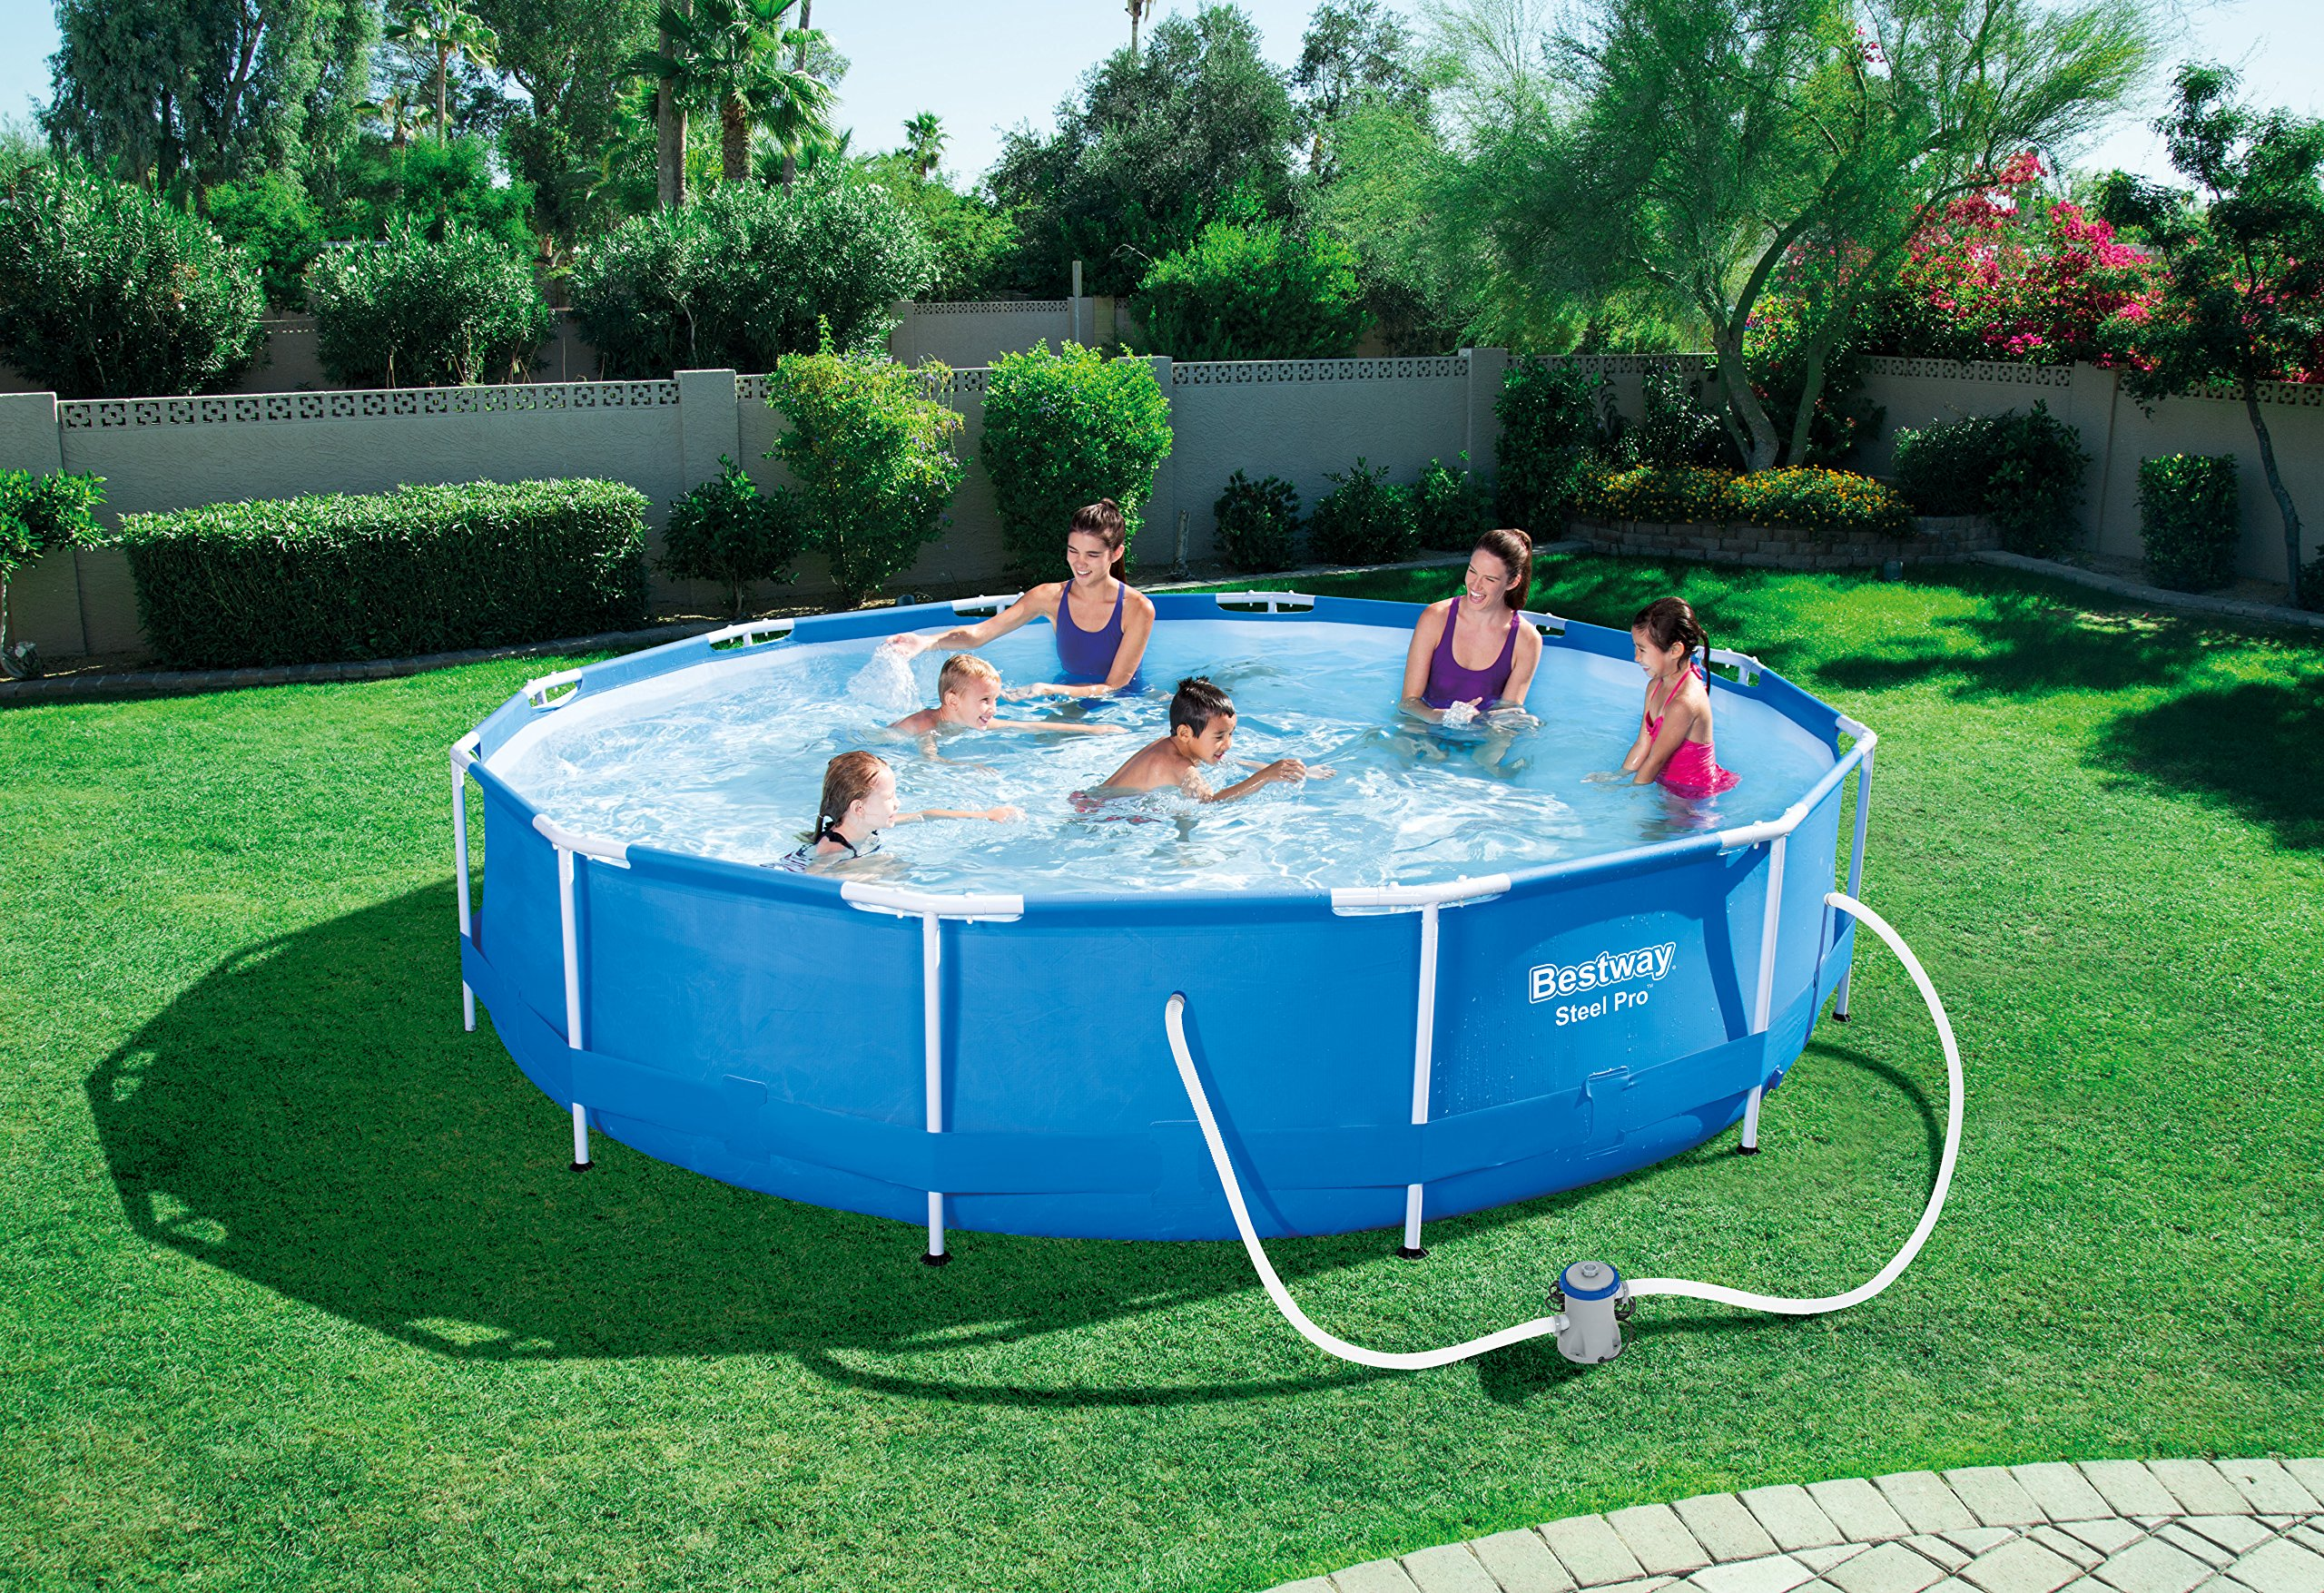 Schwimmbecken pool bestway steel pro frame pool set mit for Pool schwimmbecken